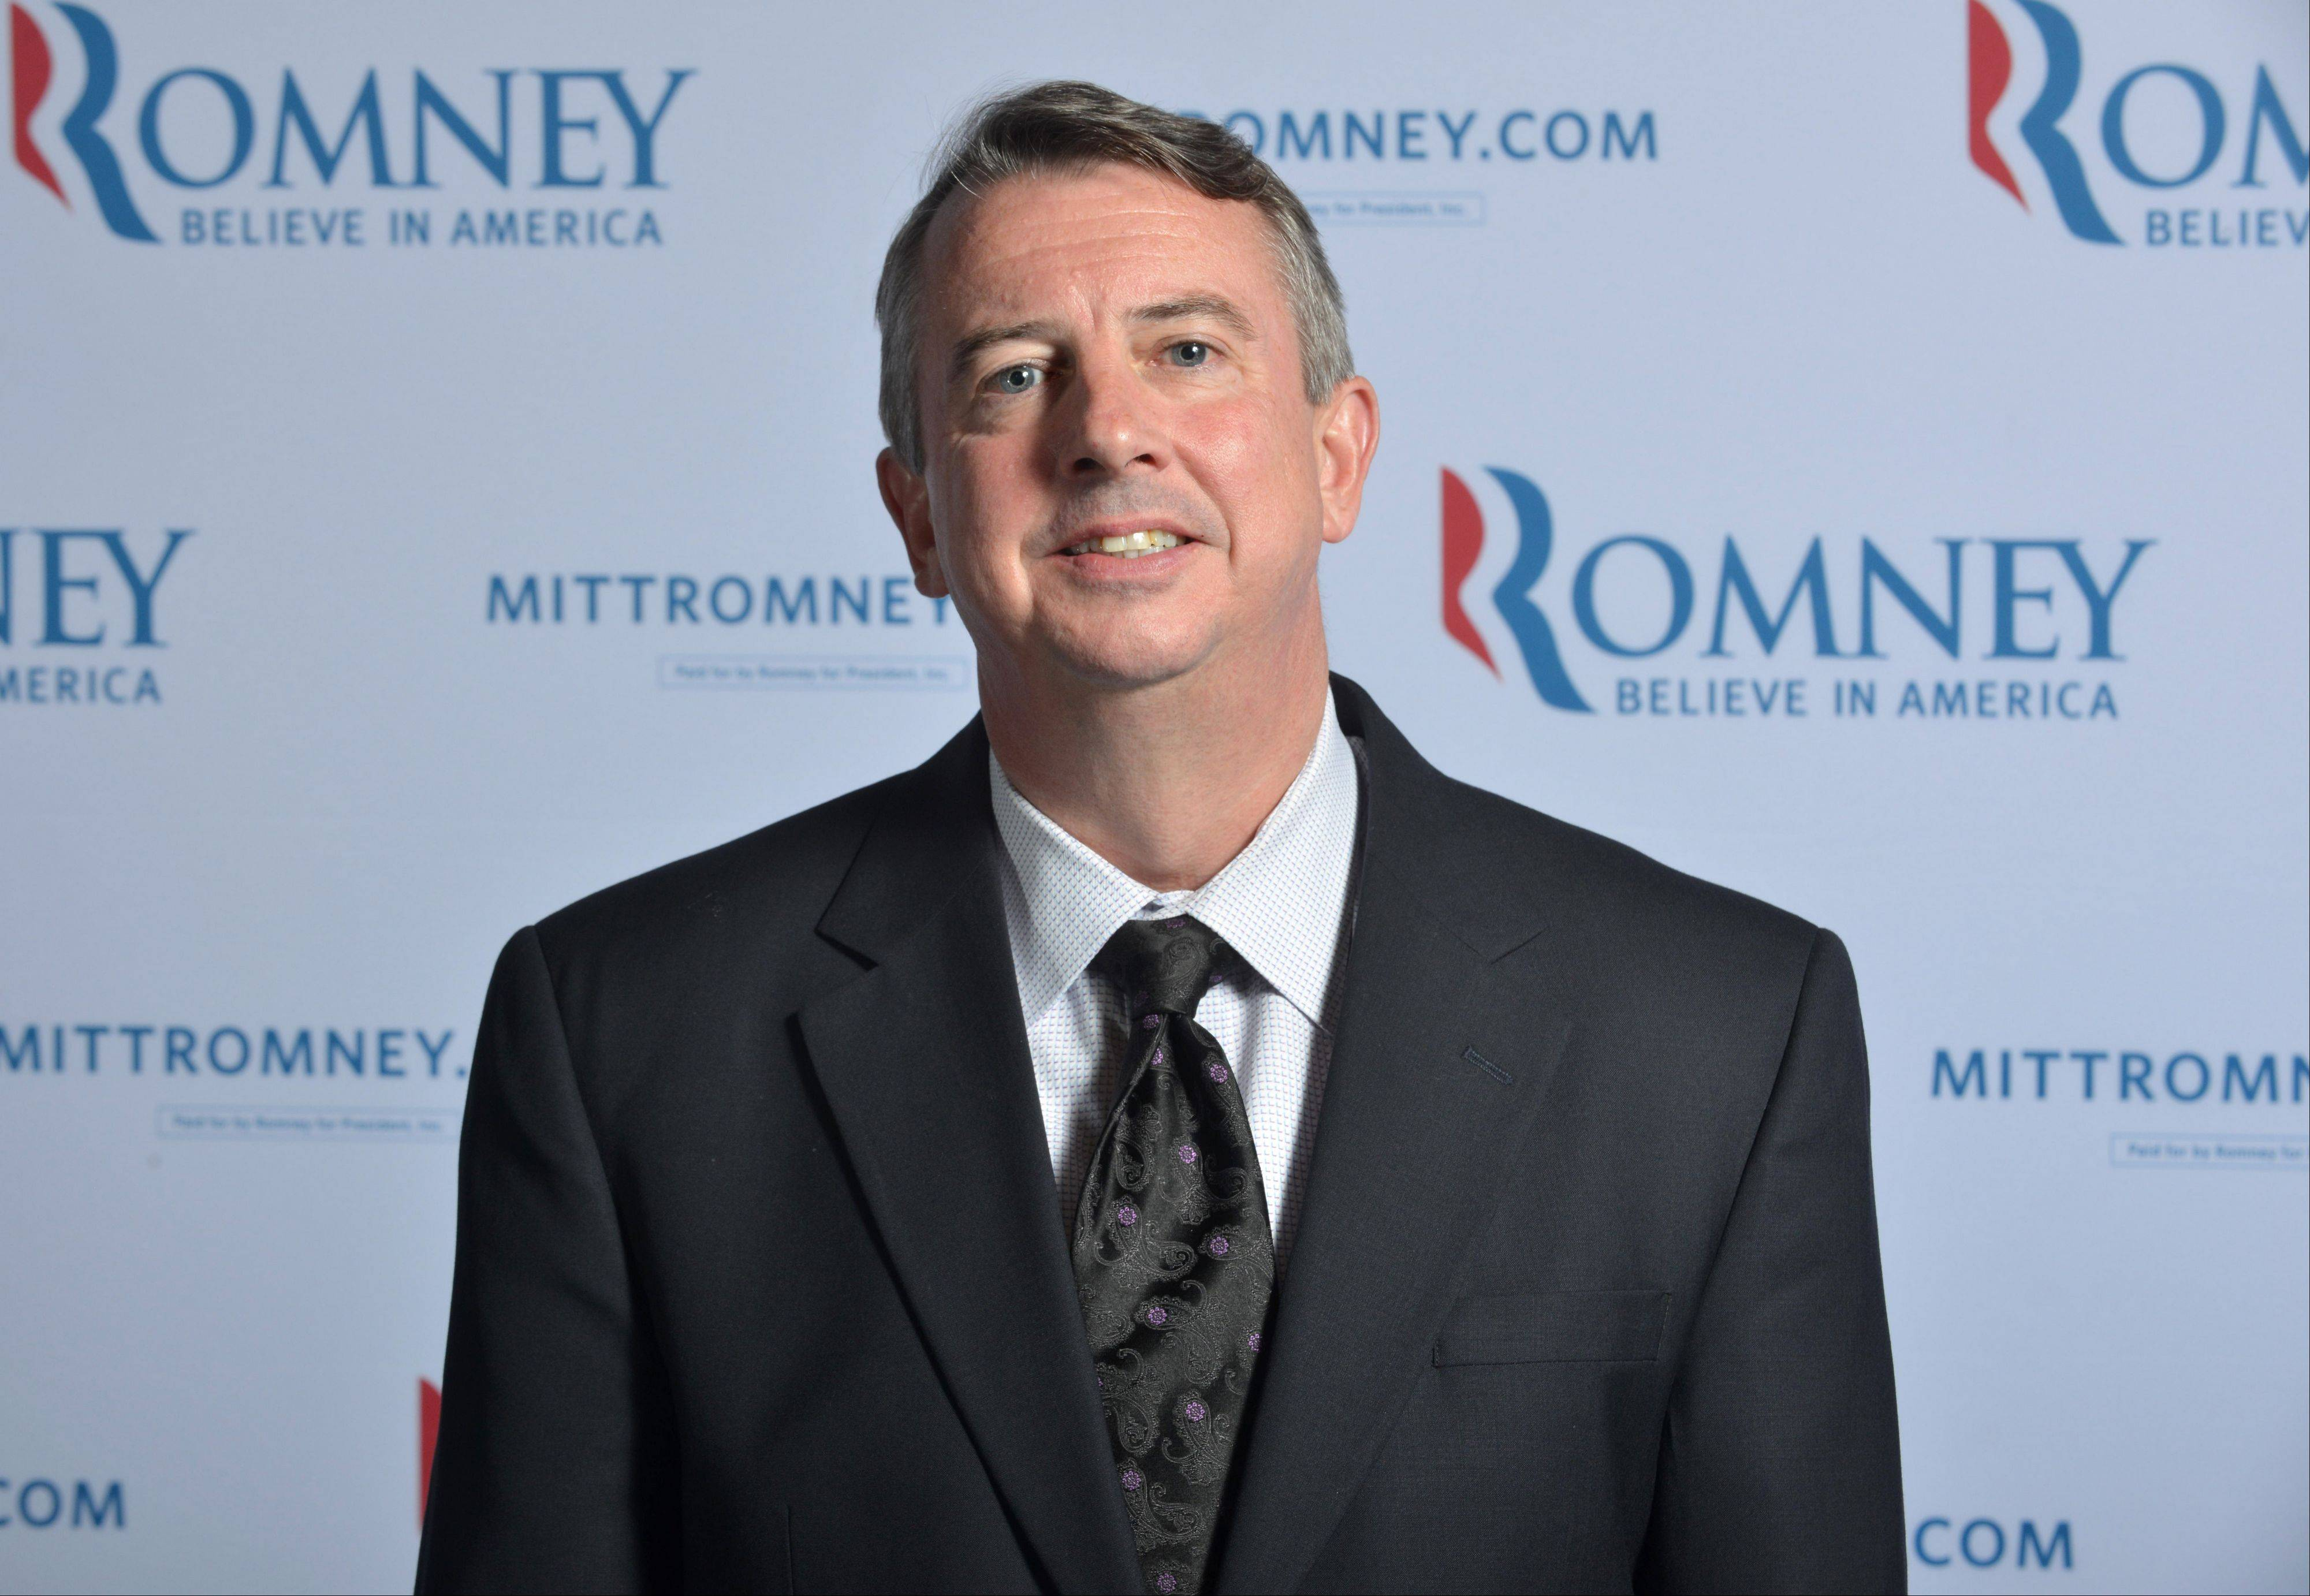 This June 1, 2012 photo shows Romney Campaign Senior Adviser Ed Gillespie at Republican presidential candidate Mitt Romney's,campaign headquarters in Boston, Mass. Gillespie is one of the few Romney aides with extensive presidential campaign experience. He headed the committee during President George W. Bush's 2004 re-election campaign and later joined the White House as an adviser.